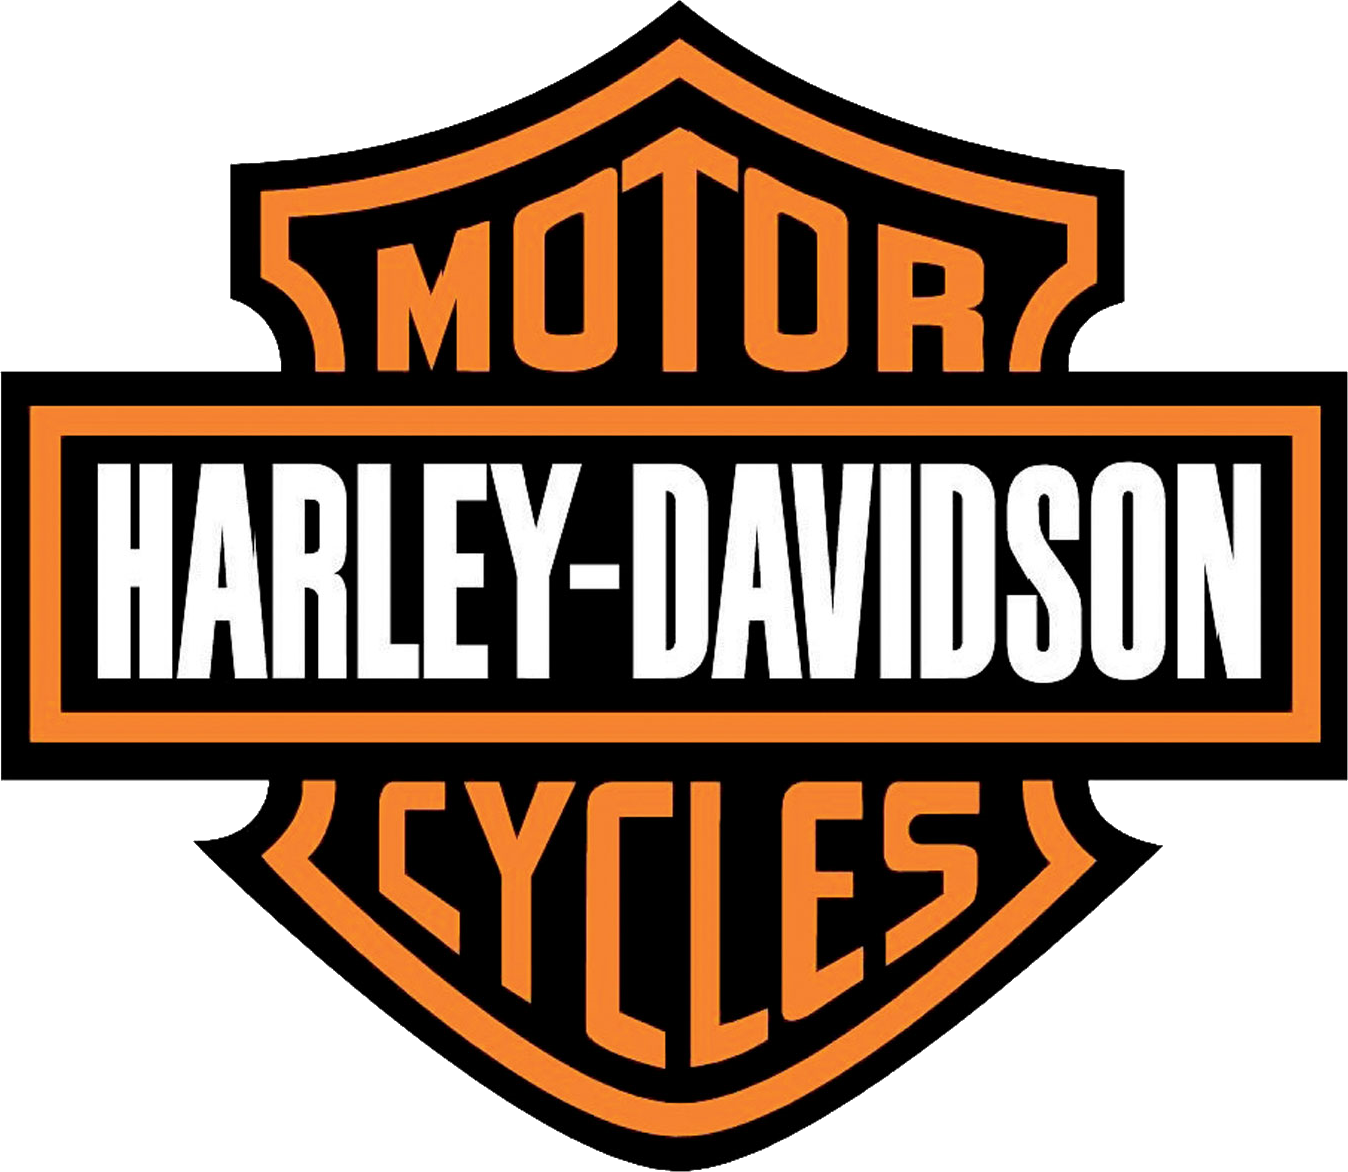 Harley Davidson Logo Google Search 352 Project 1 Competitive